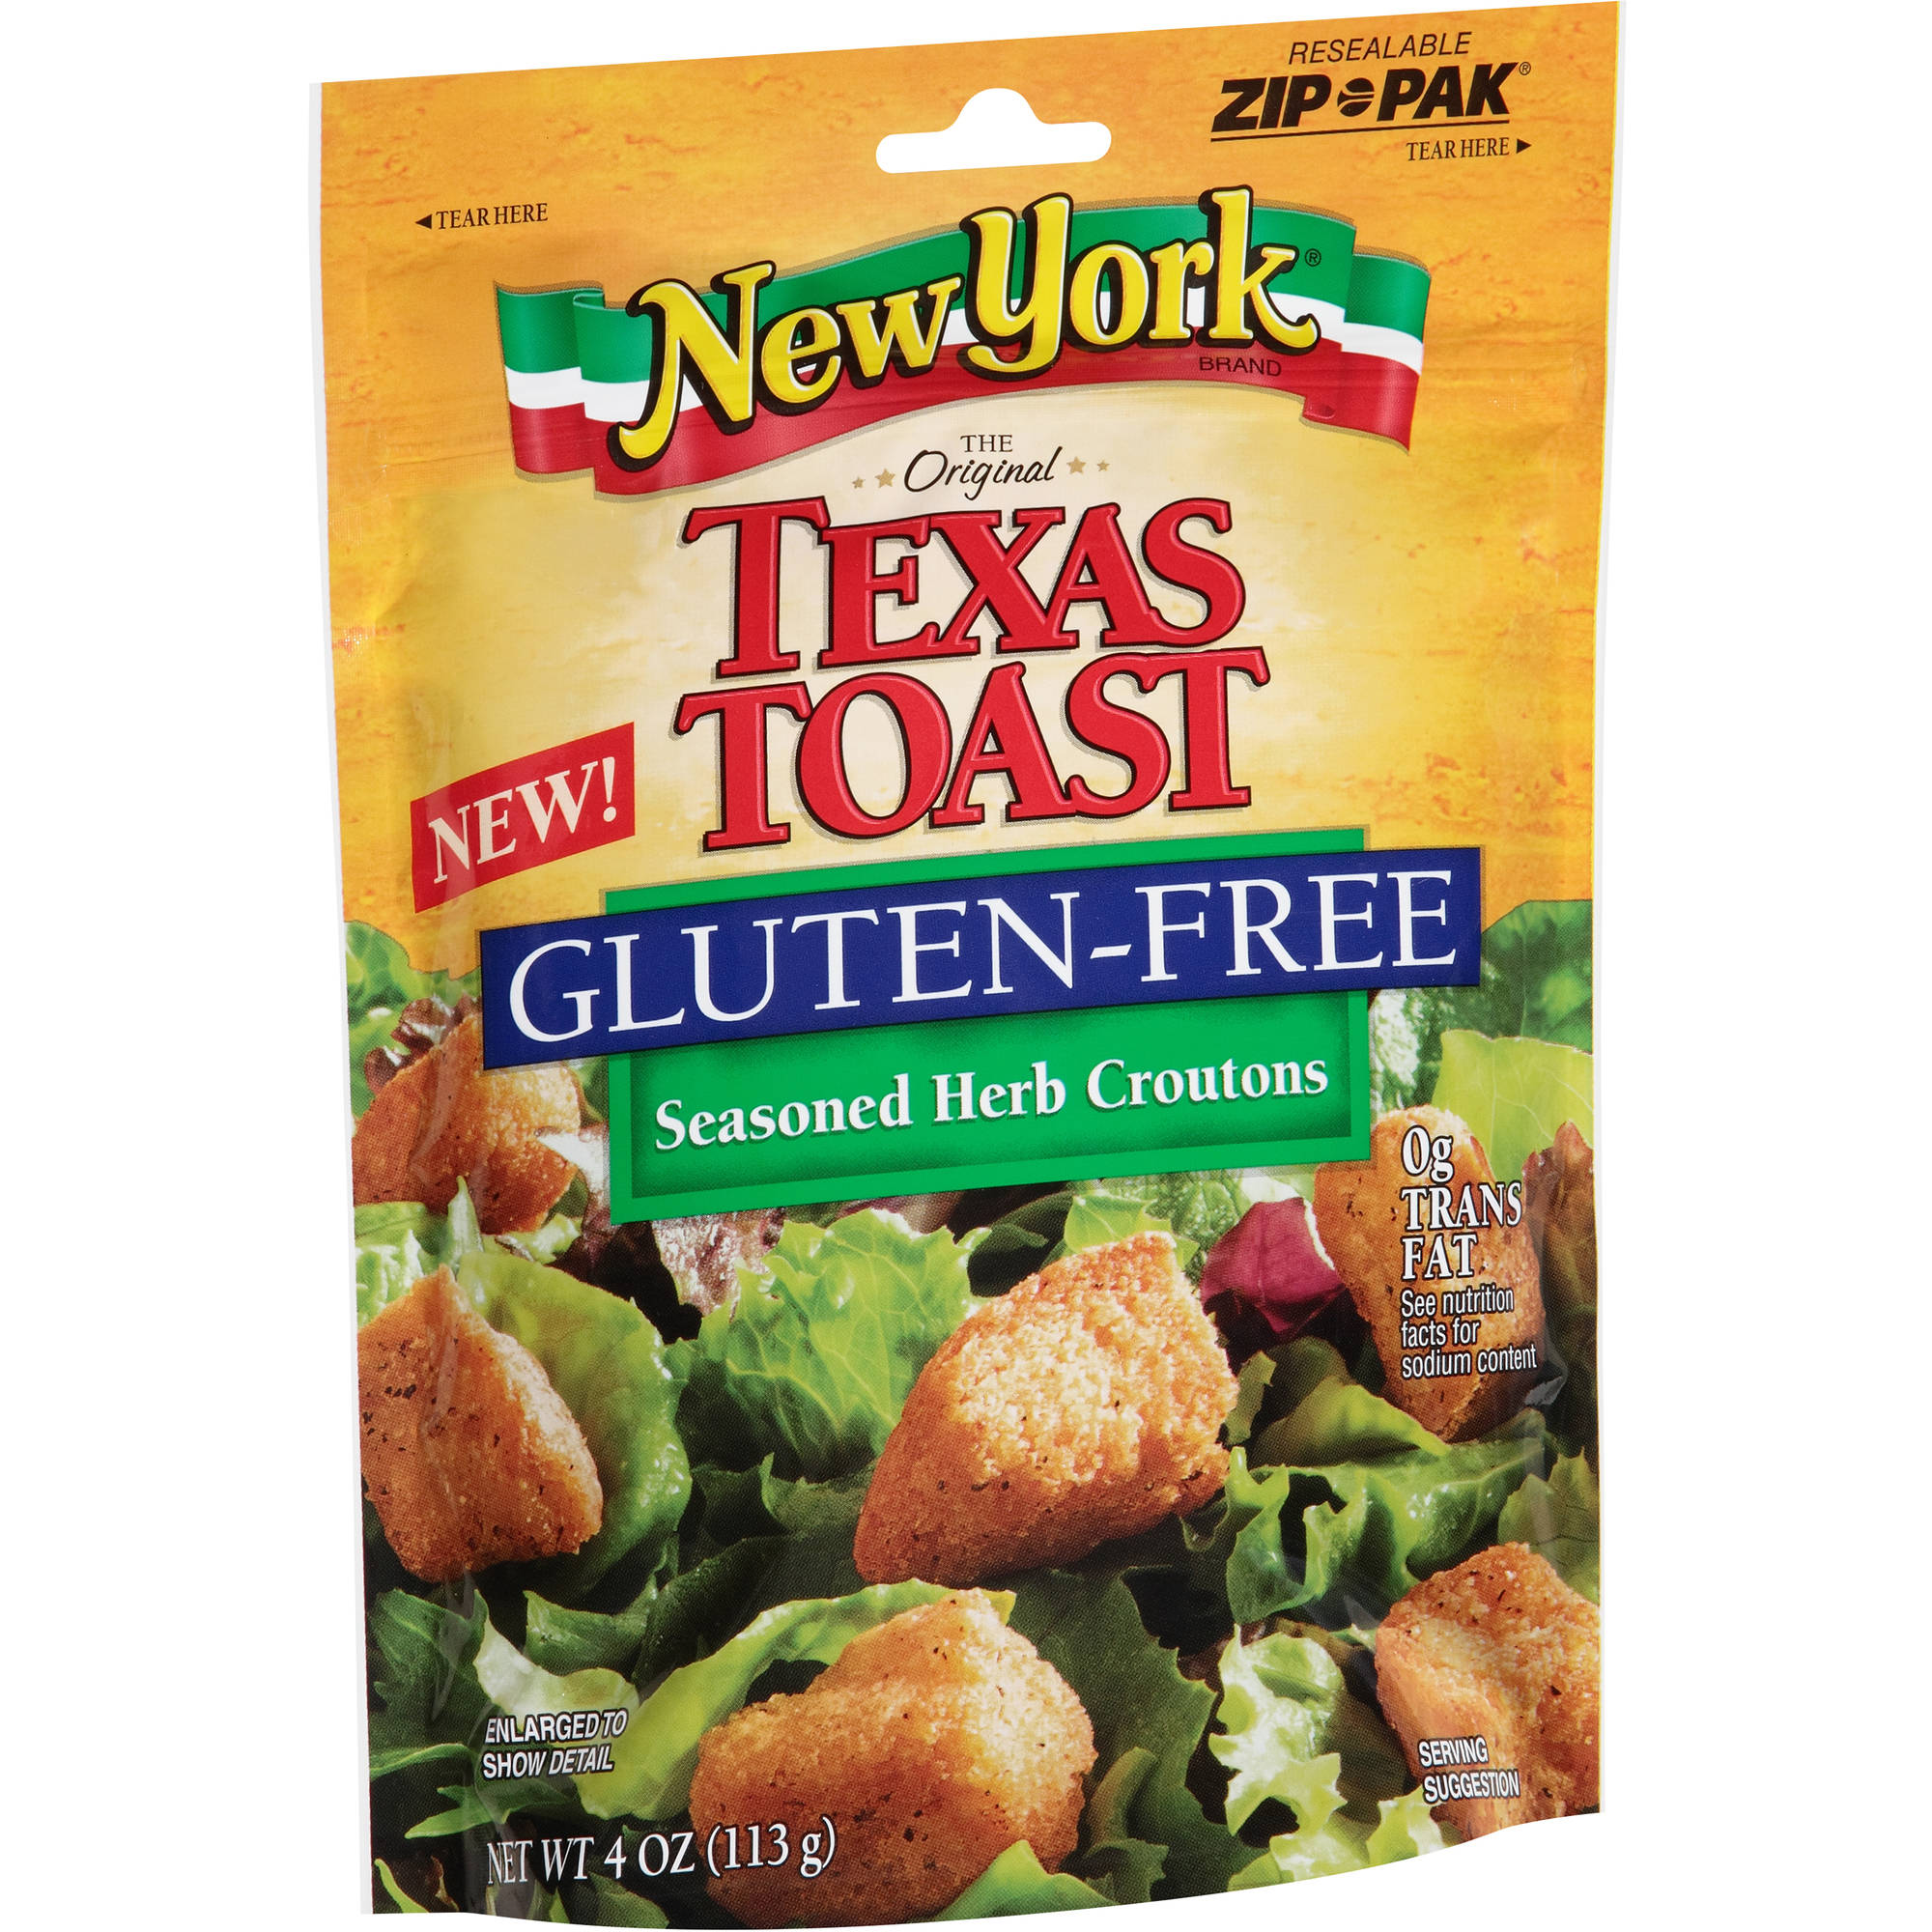 New York Brand Texas Toast Gluten-Free Seasoned Herb Croutons, 4 oz